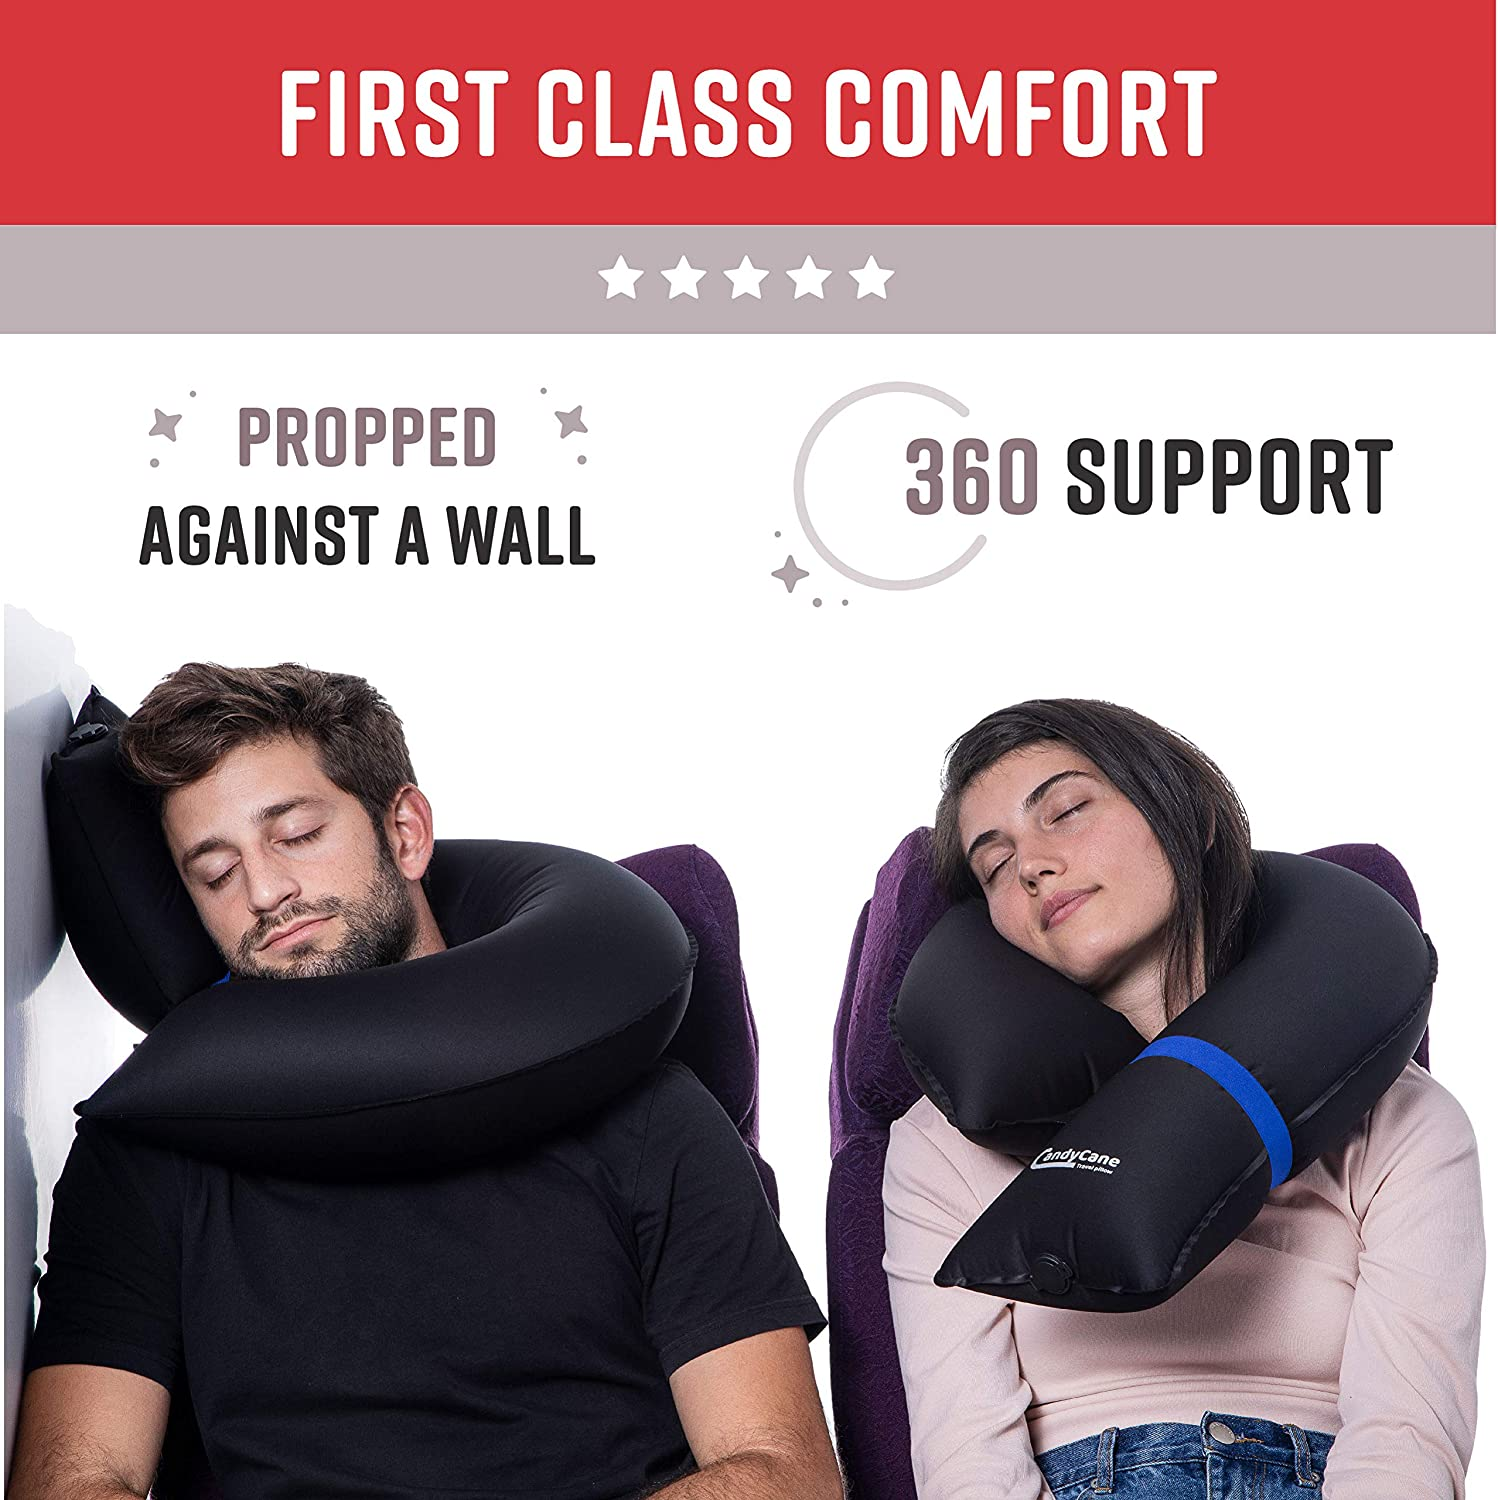 SB Extremely Comfortable 360 Head Support with Portable Carrying Bag Instantly Inflatable CANDY CANE Premium Travel Pillow The First Ever 100/% Modular and Compact Neck Pillow for Airplane and Car